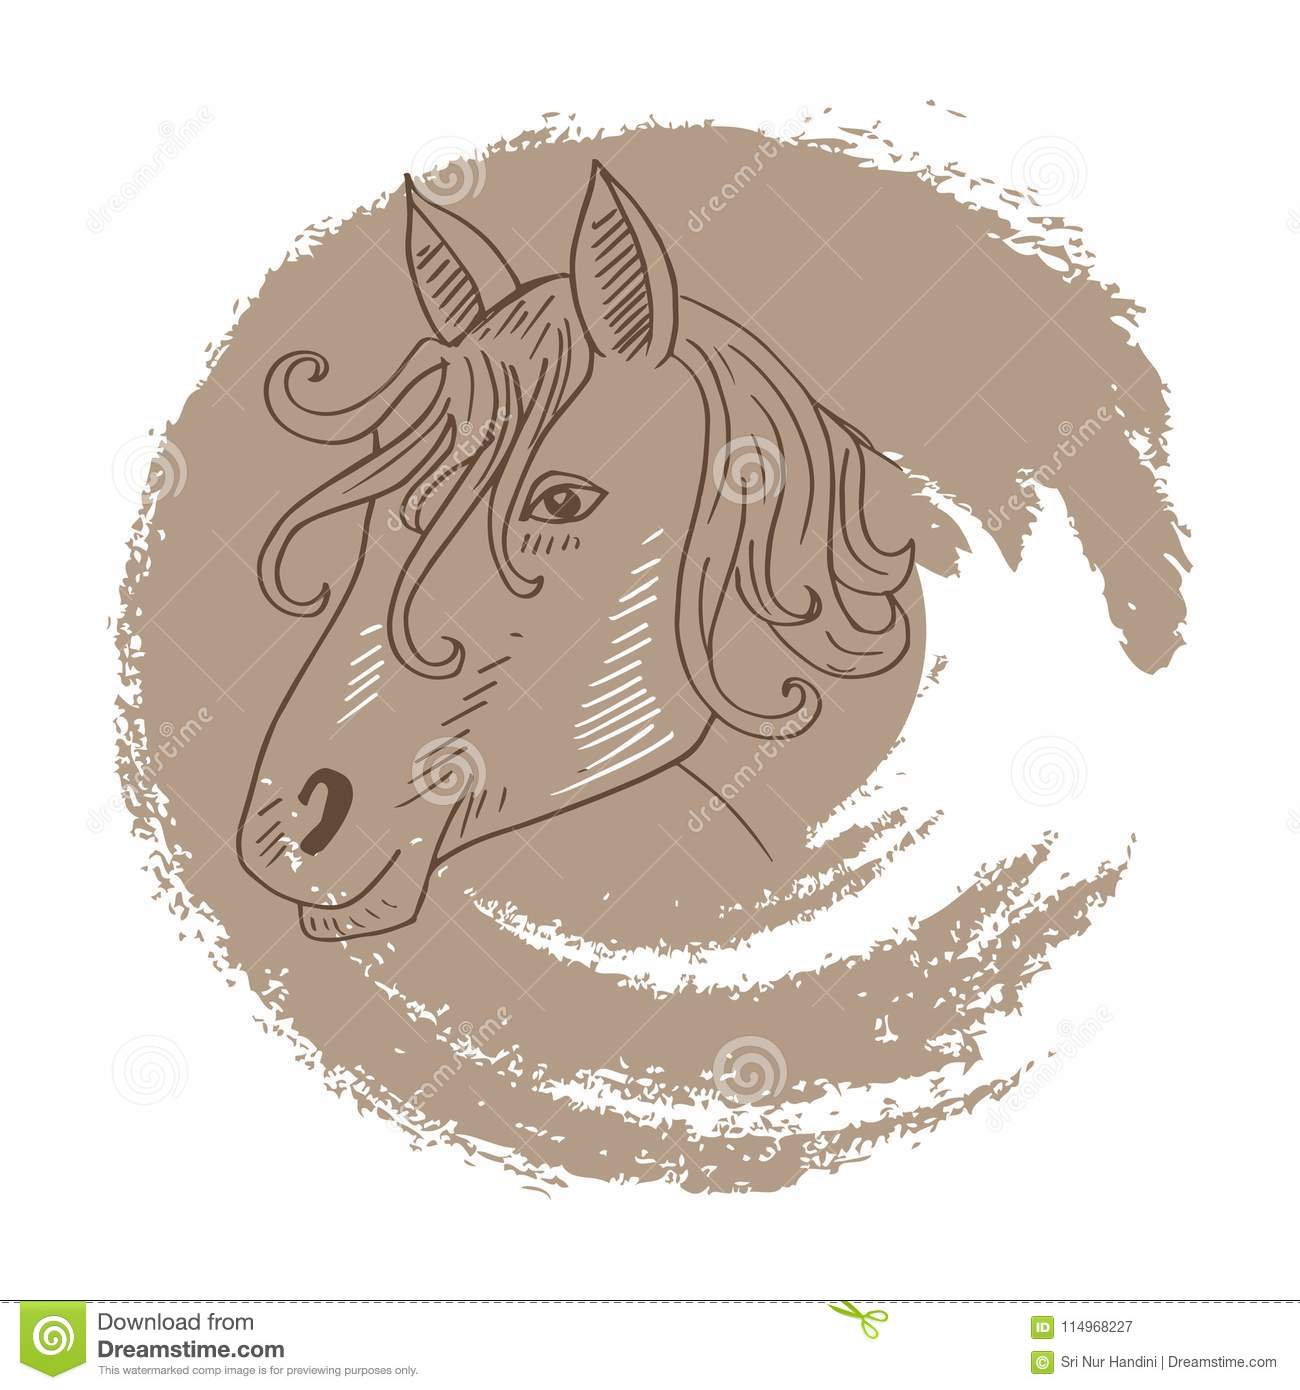 Horse Face Drawing Stock Illustrations 3 220 Horse Face Drawing Stock Illustrations Vectors Clipart Dreamstime